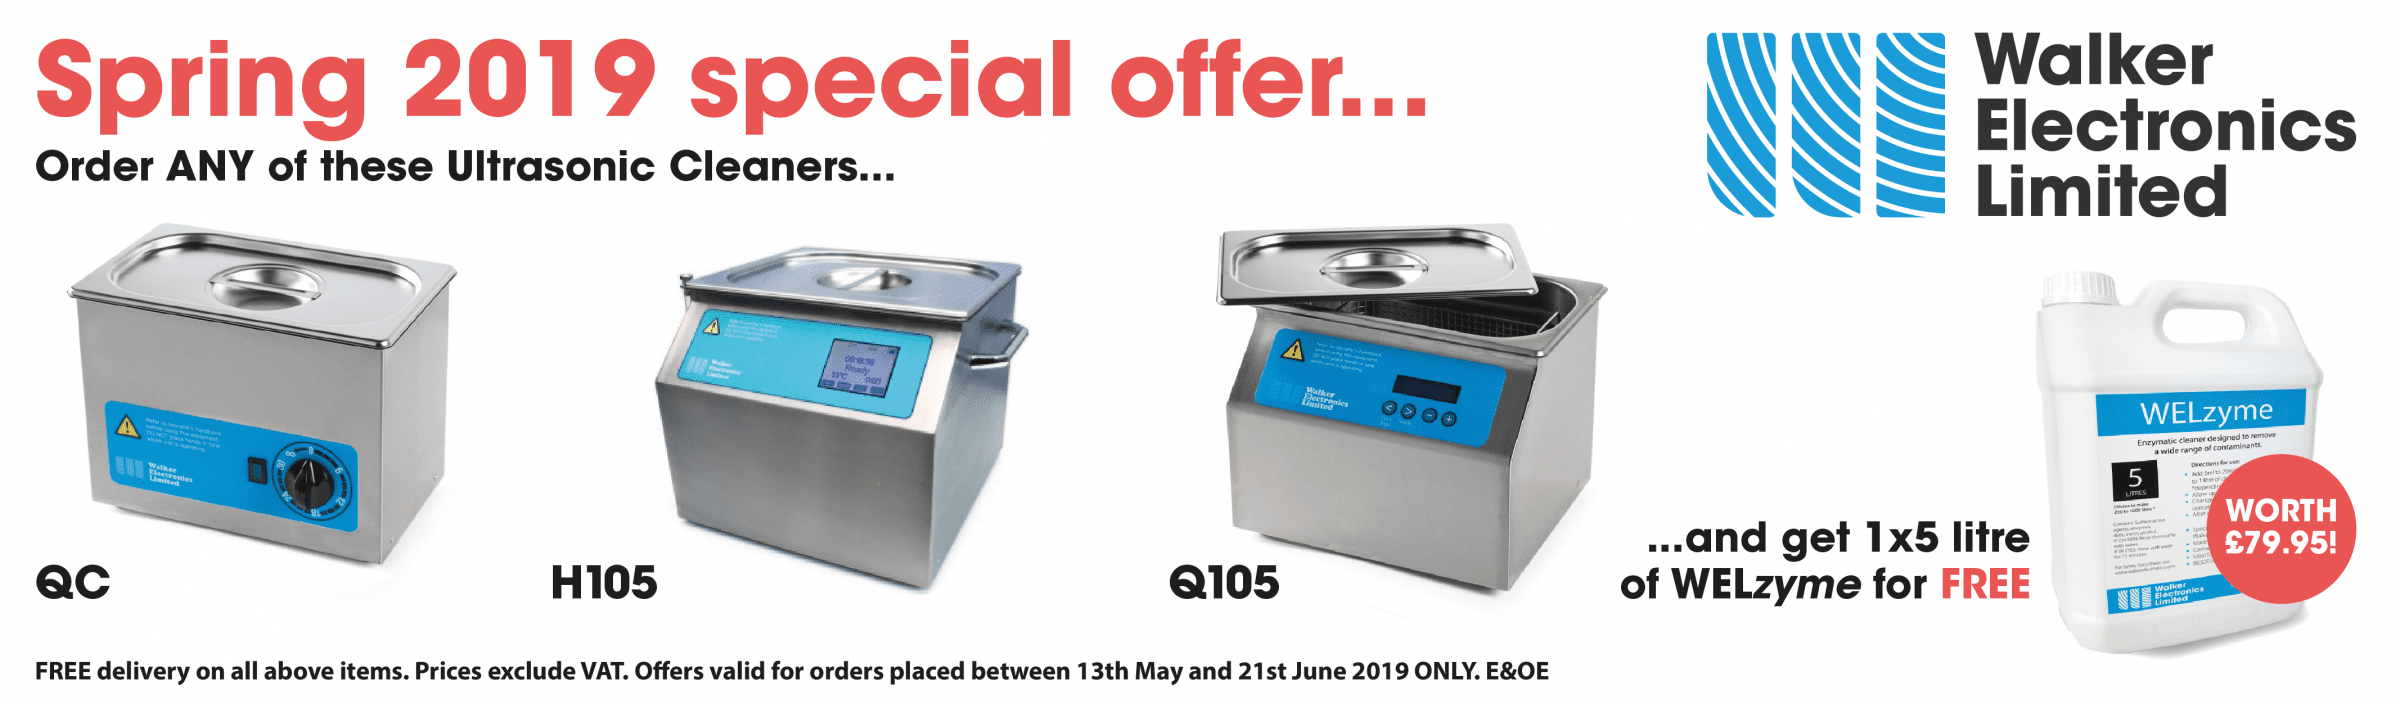 Spring 2019 Special Offers